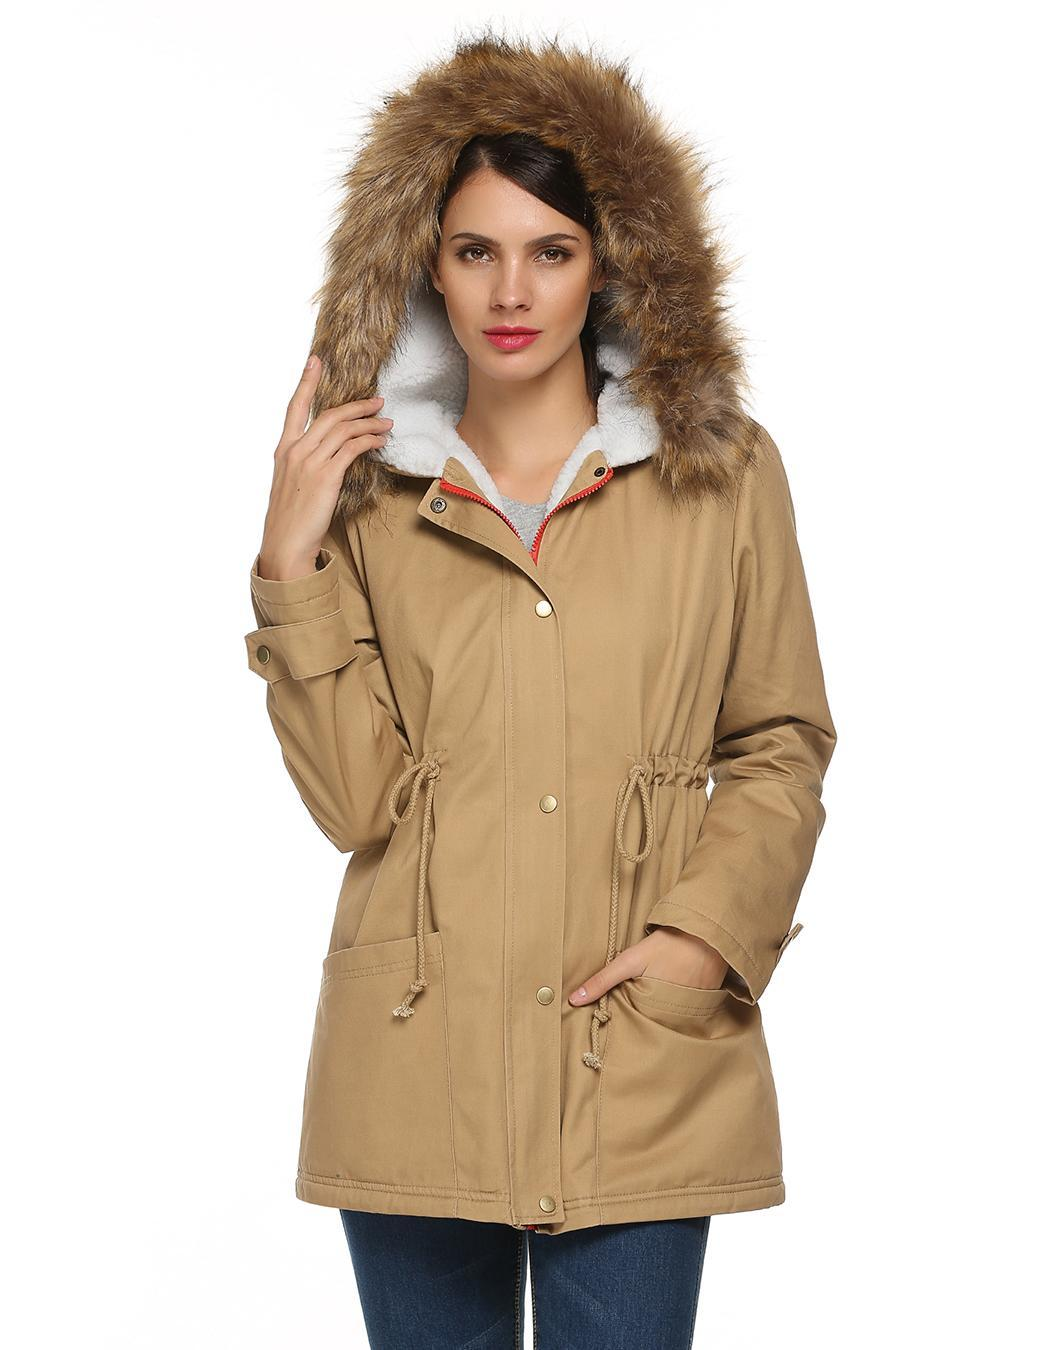 Women Zipper Hooded Warm Faux Fur Long Coat Outwear 0